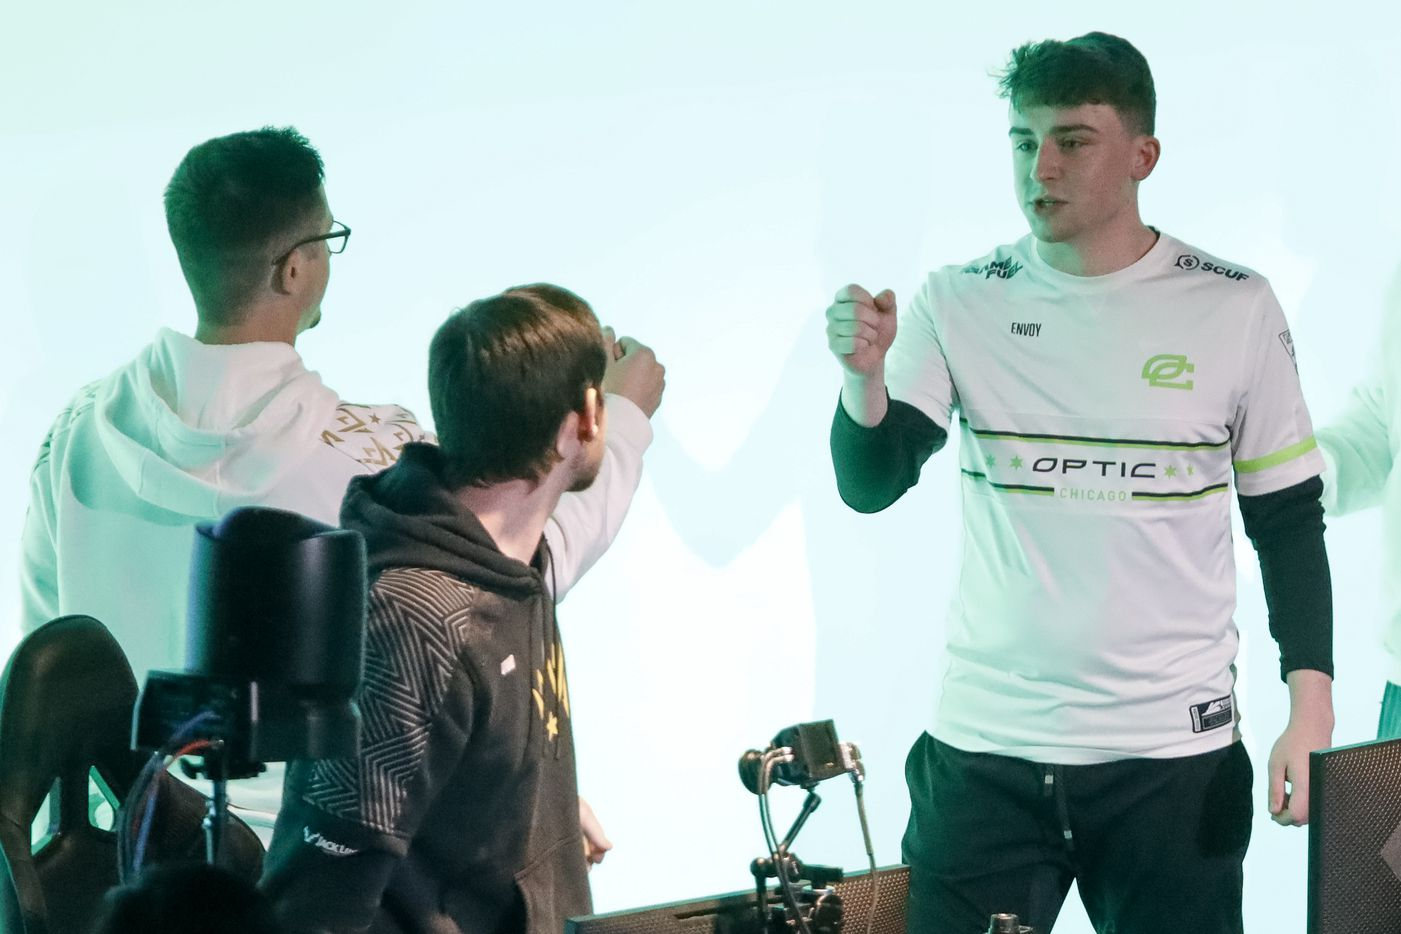 """Dylan """"Envoy"""" Hannon of Chicago OpTic (right) greets Dallas Empire head coach Raymond """"Rambo"""" Lussier (left) after a match during the Call of Duty League Major V tournament at Esports Stadium Arlington on Sunday, Aug. 1, 2021, in Arlington. Empire finished 4th in the tournament after a 3-1 loss to OpTic. (Elias Valverde II/The Dallas Morning News)"""